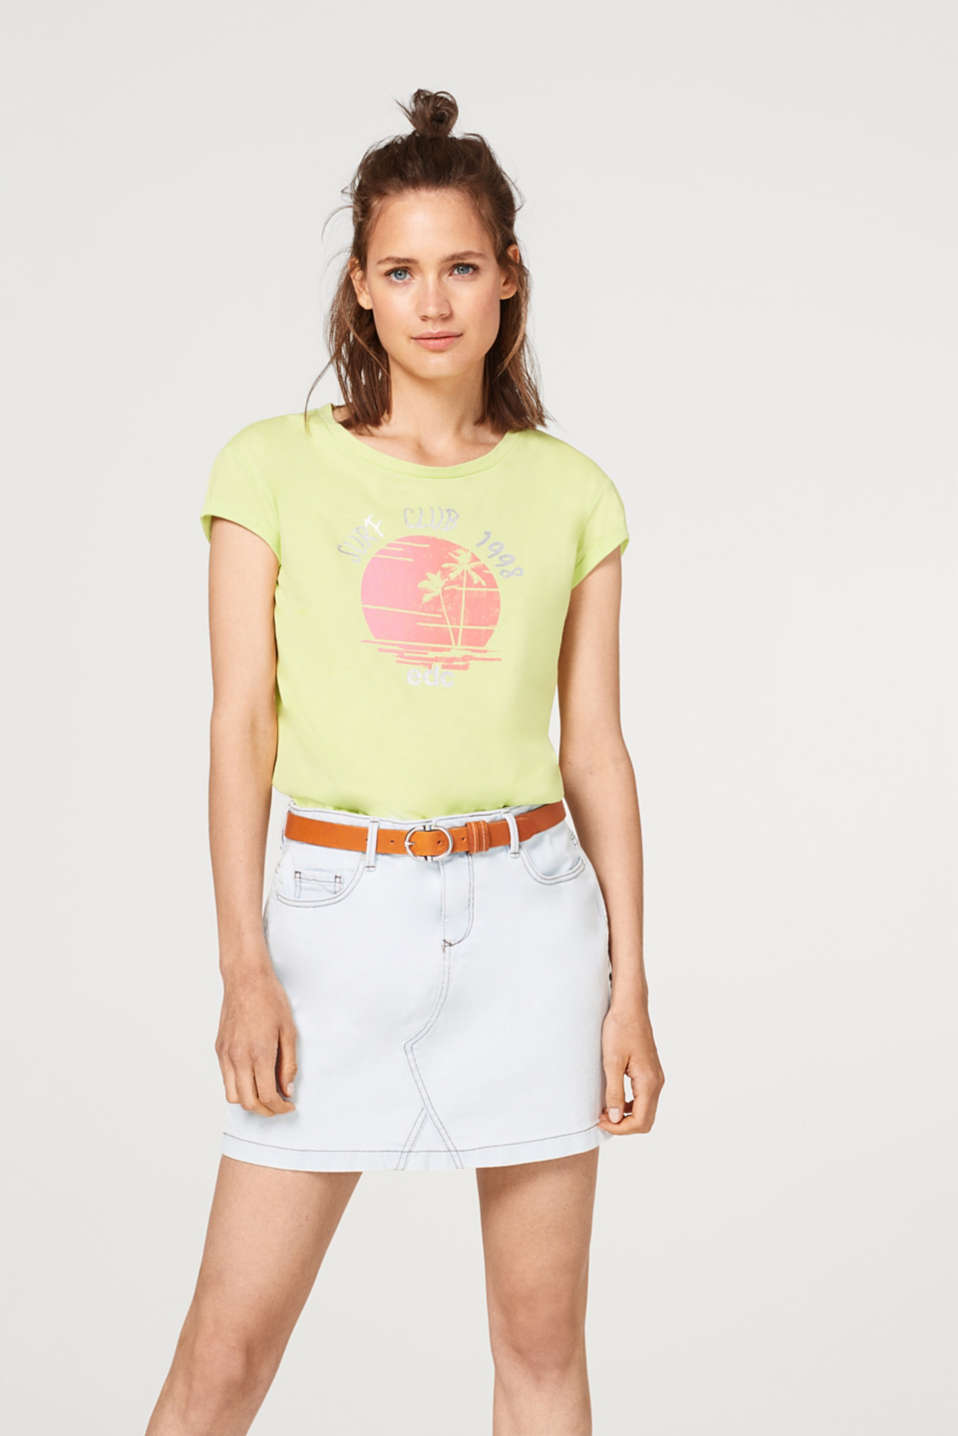 edc - T-shirt with a beach print, 100% cotton